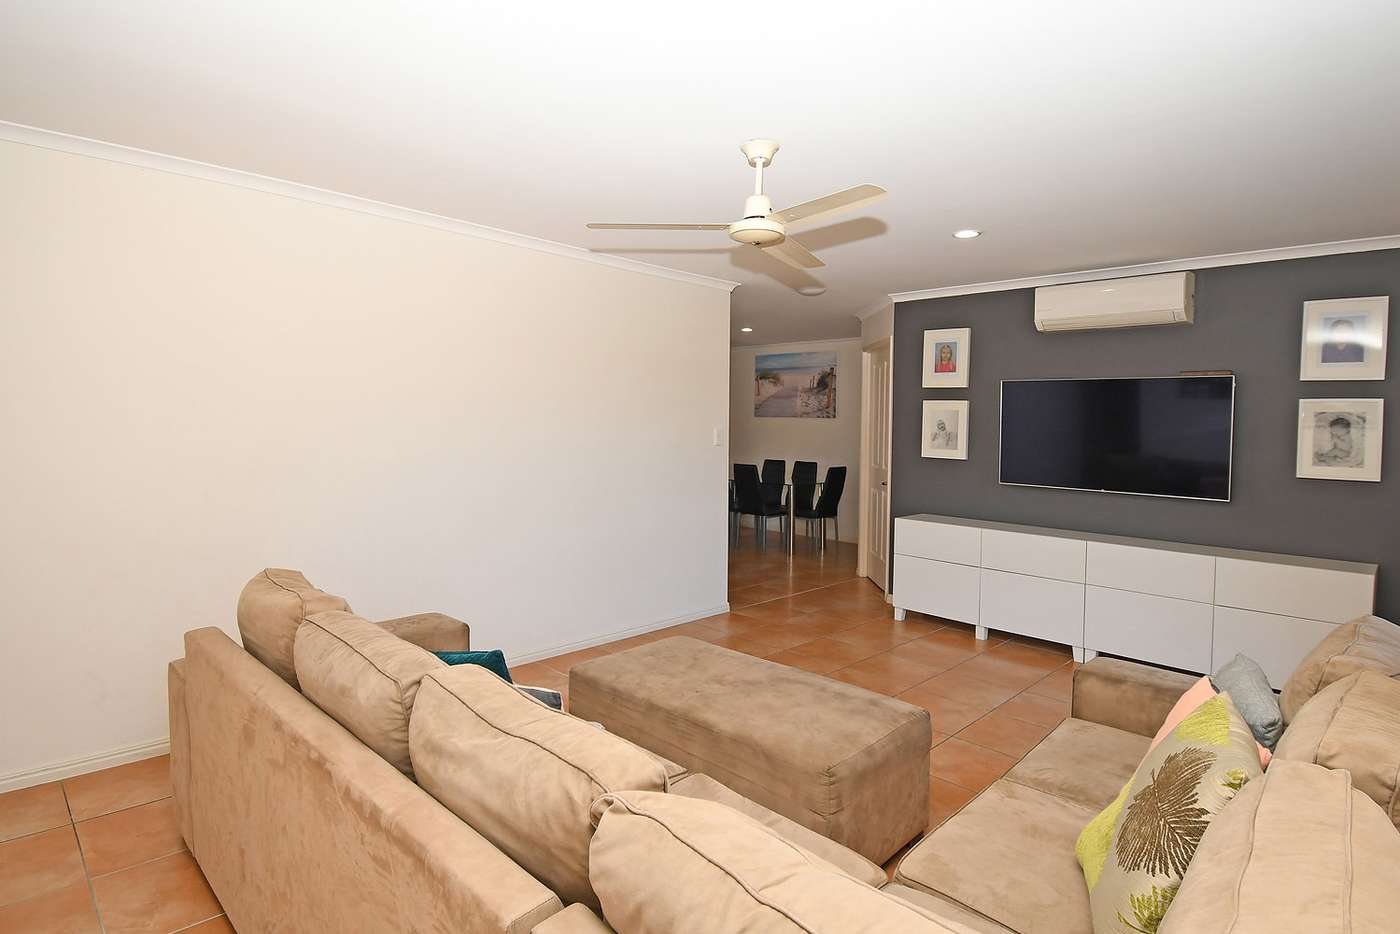 Seventh view of Homely house listing, 12 Bianca Ct, Torquay QLD 4655